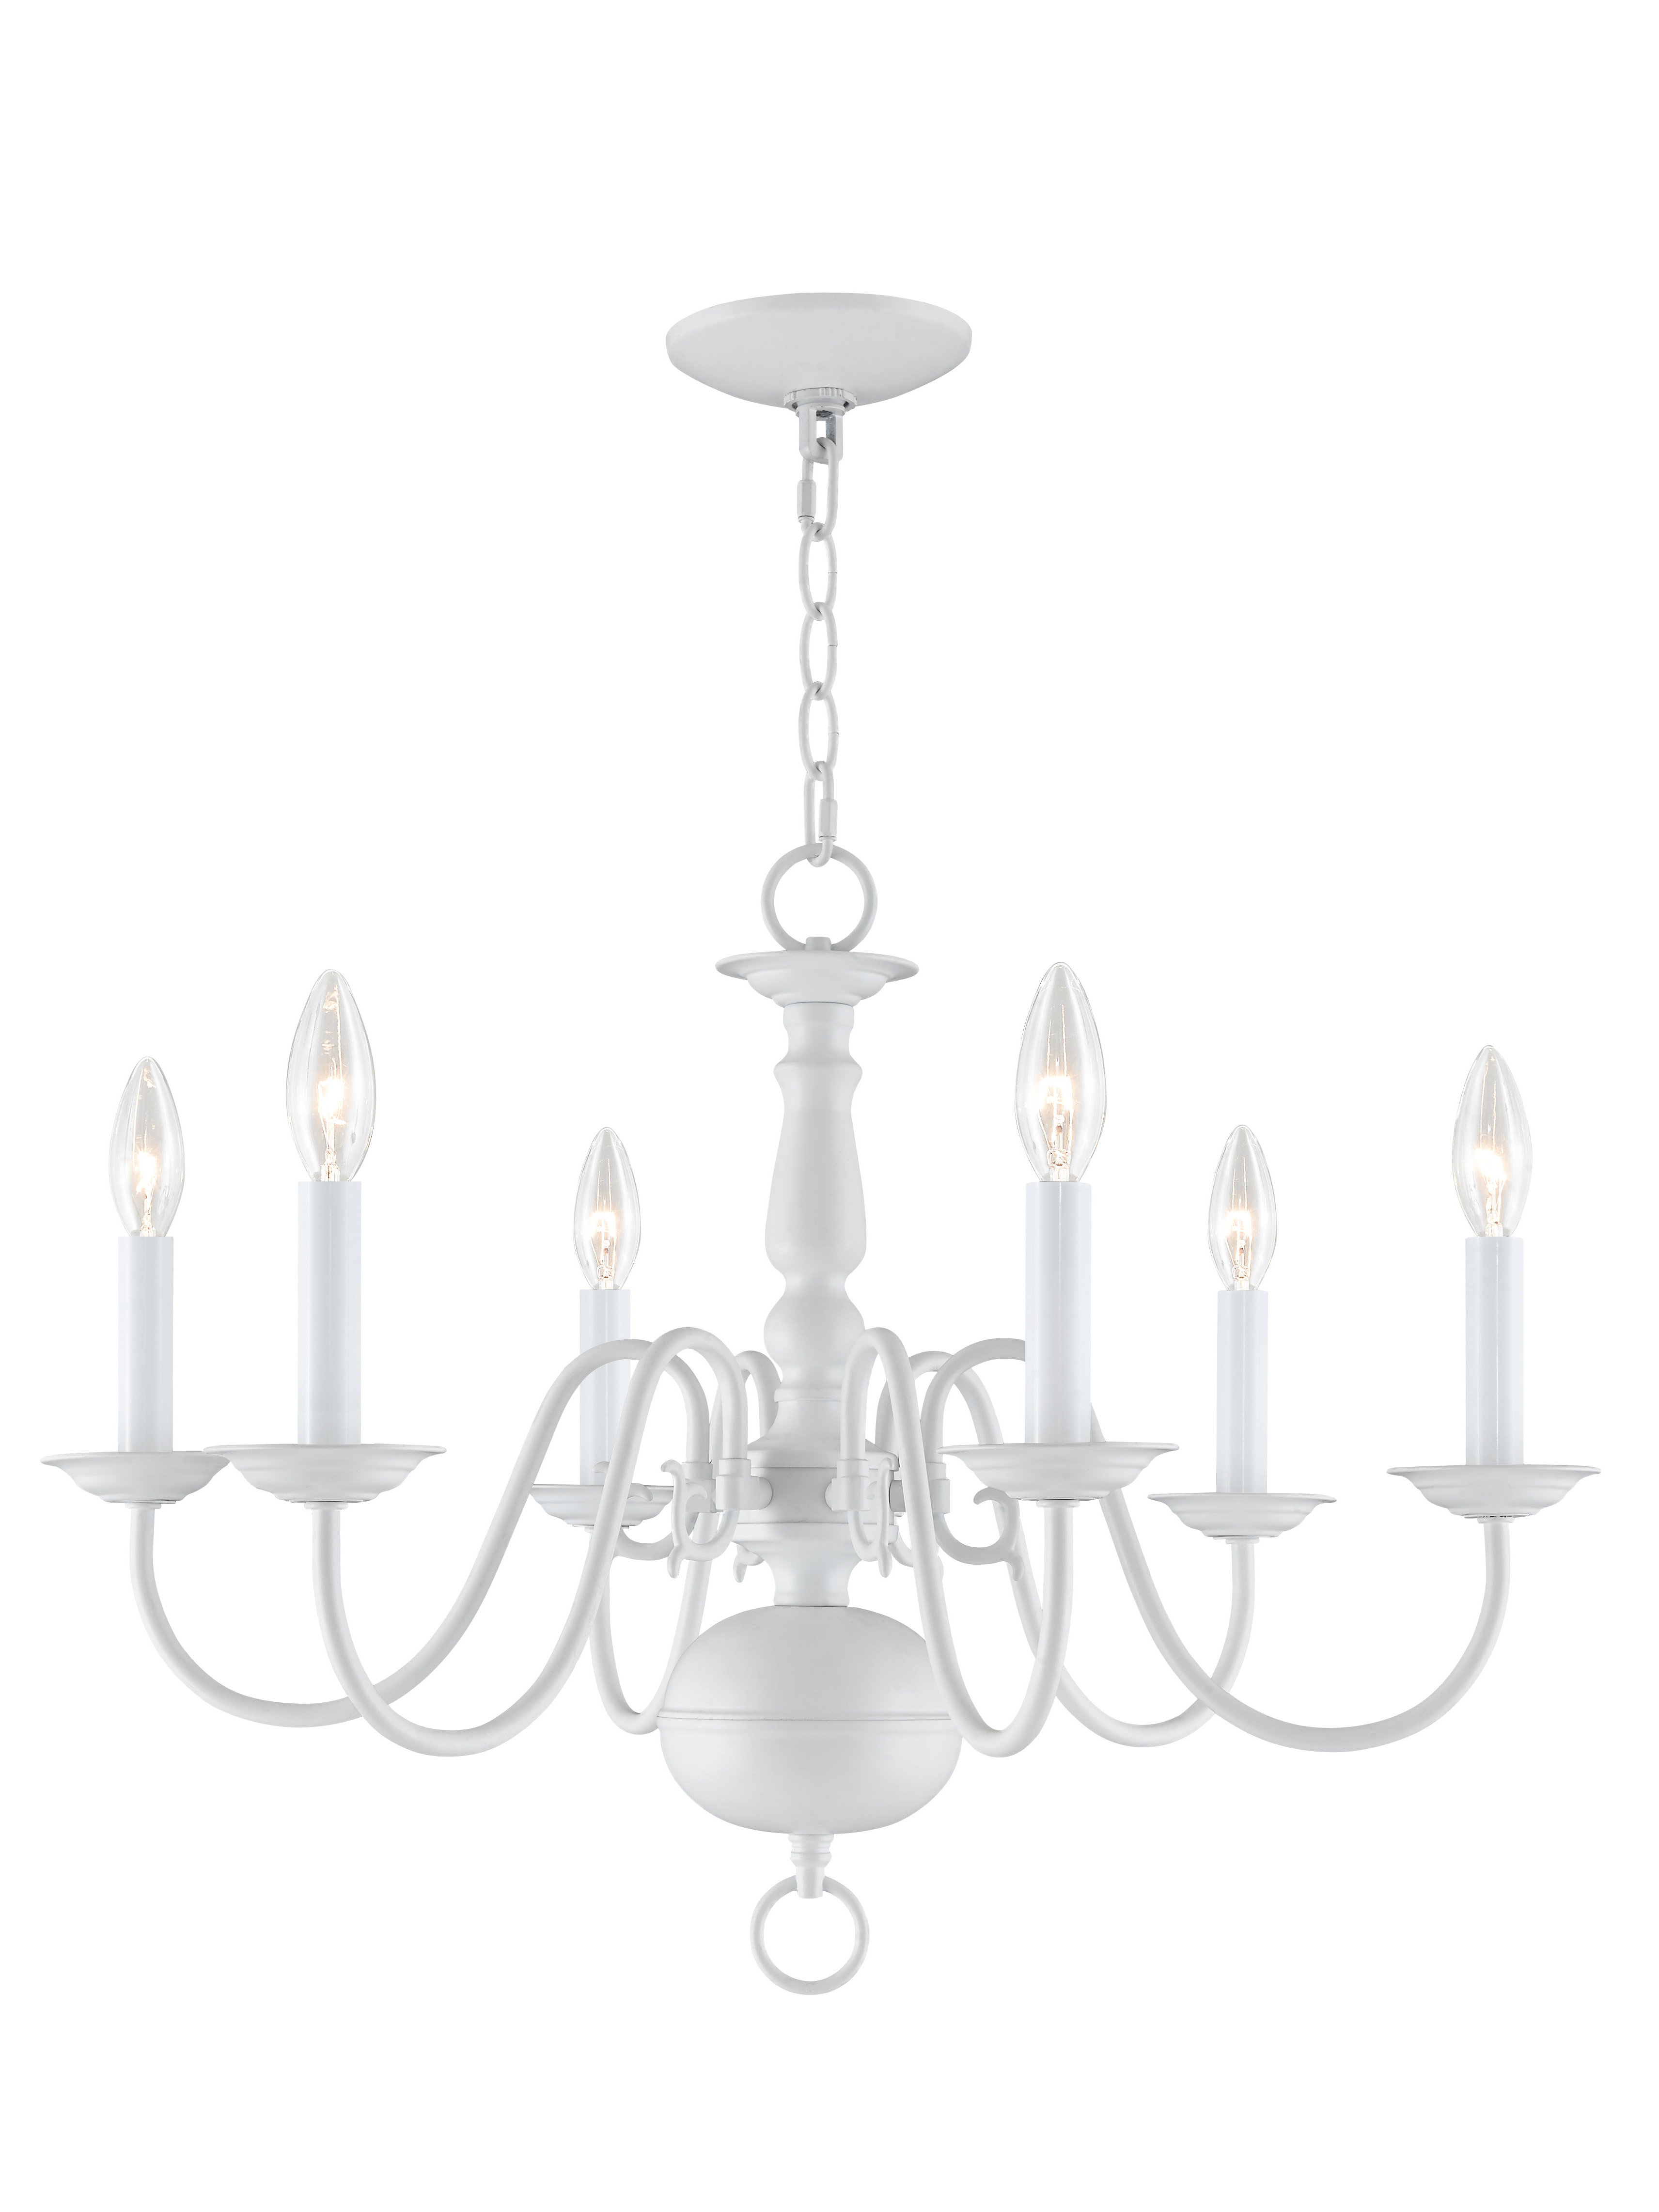 Berger 5 Light Candle Style Chandeliers For Widely Used Three Posts Allensby 6 Light Candle Style Chandelier (View 4 of 20)